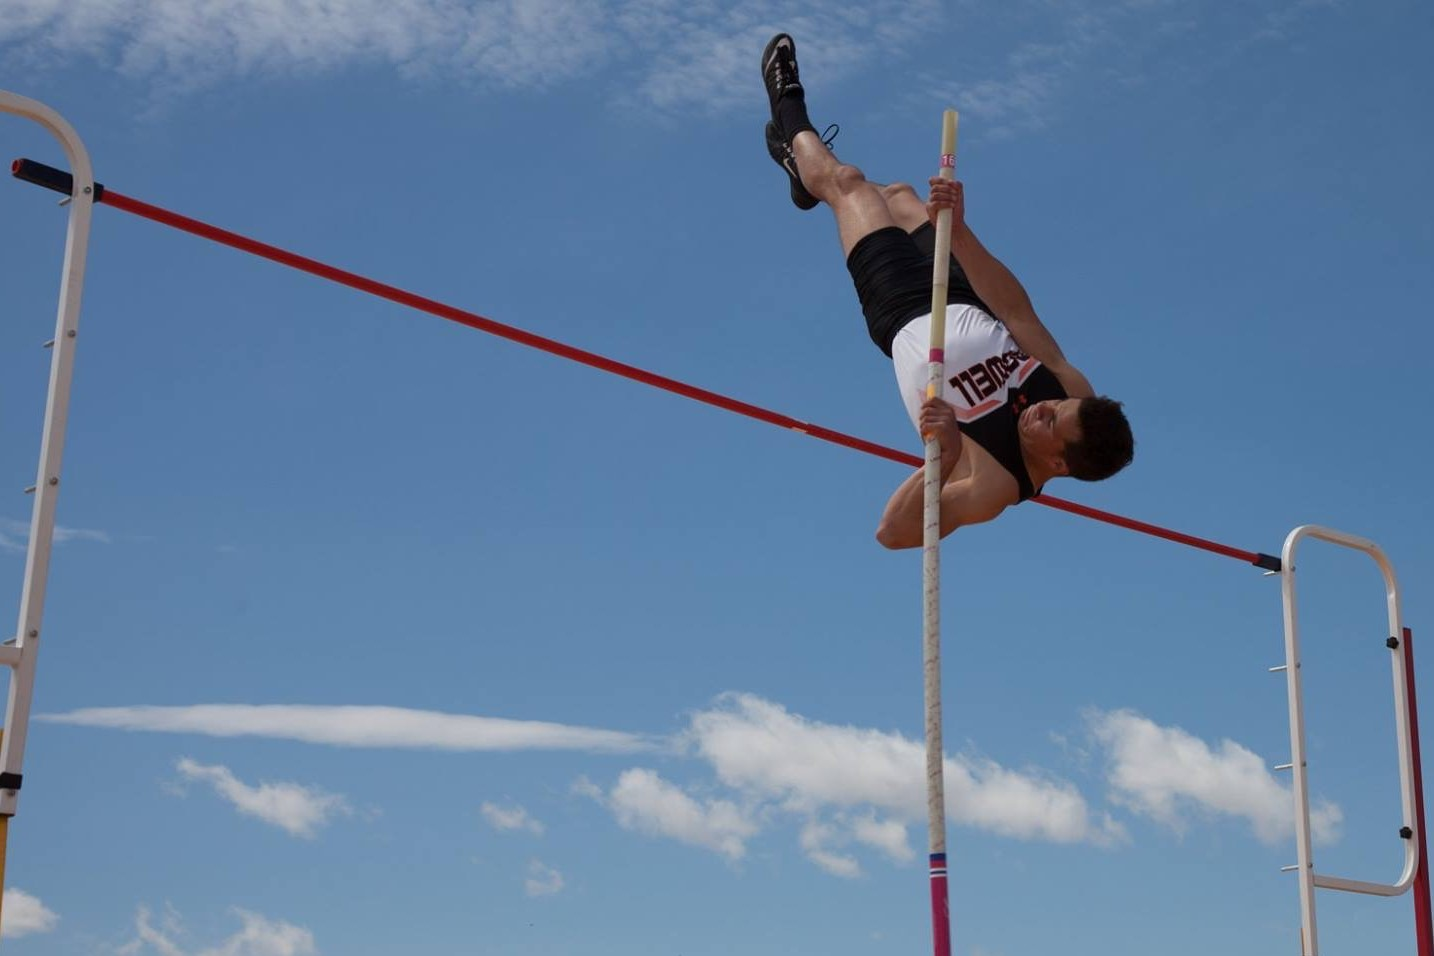 Junior Brody Karhu sets the PHS boys' pole vault record at 15 feet, 1 inch, during the meet in Cowley on April 27.